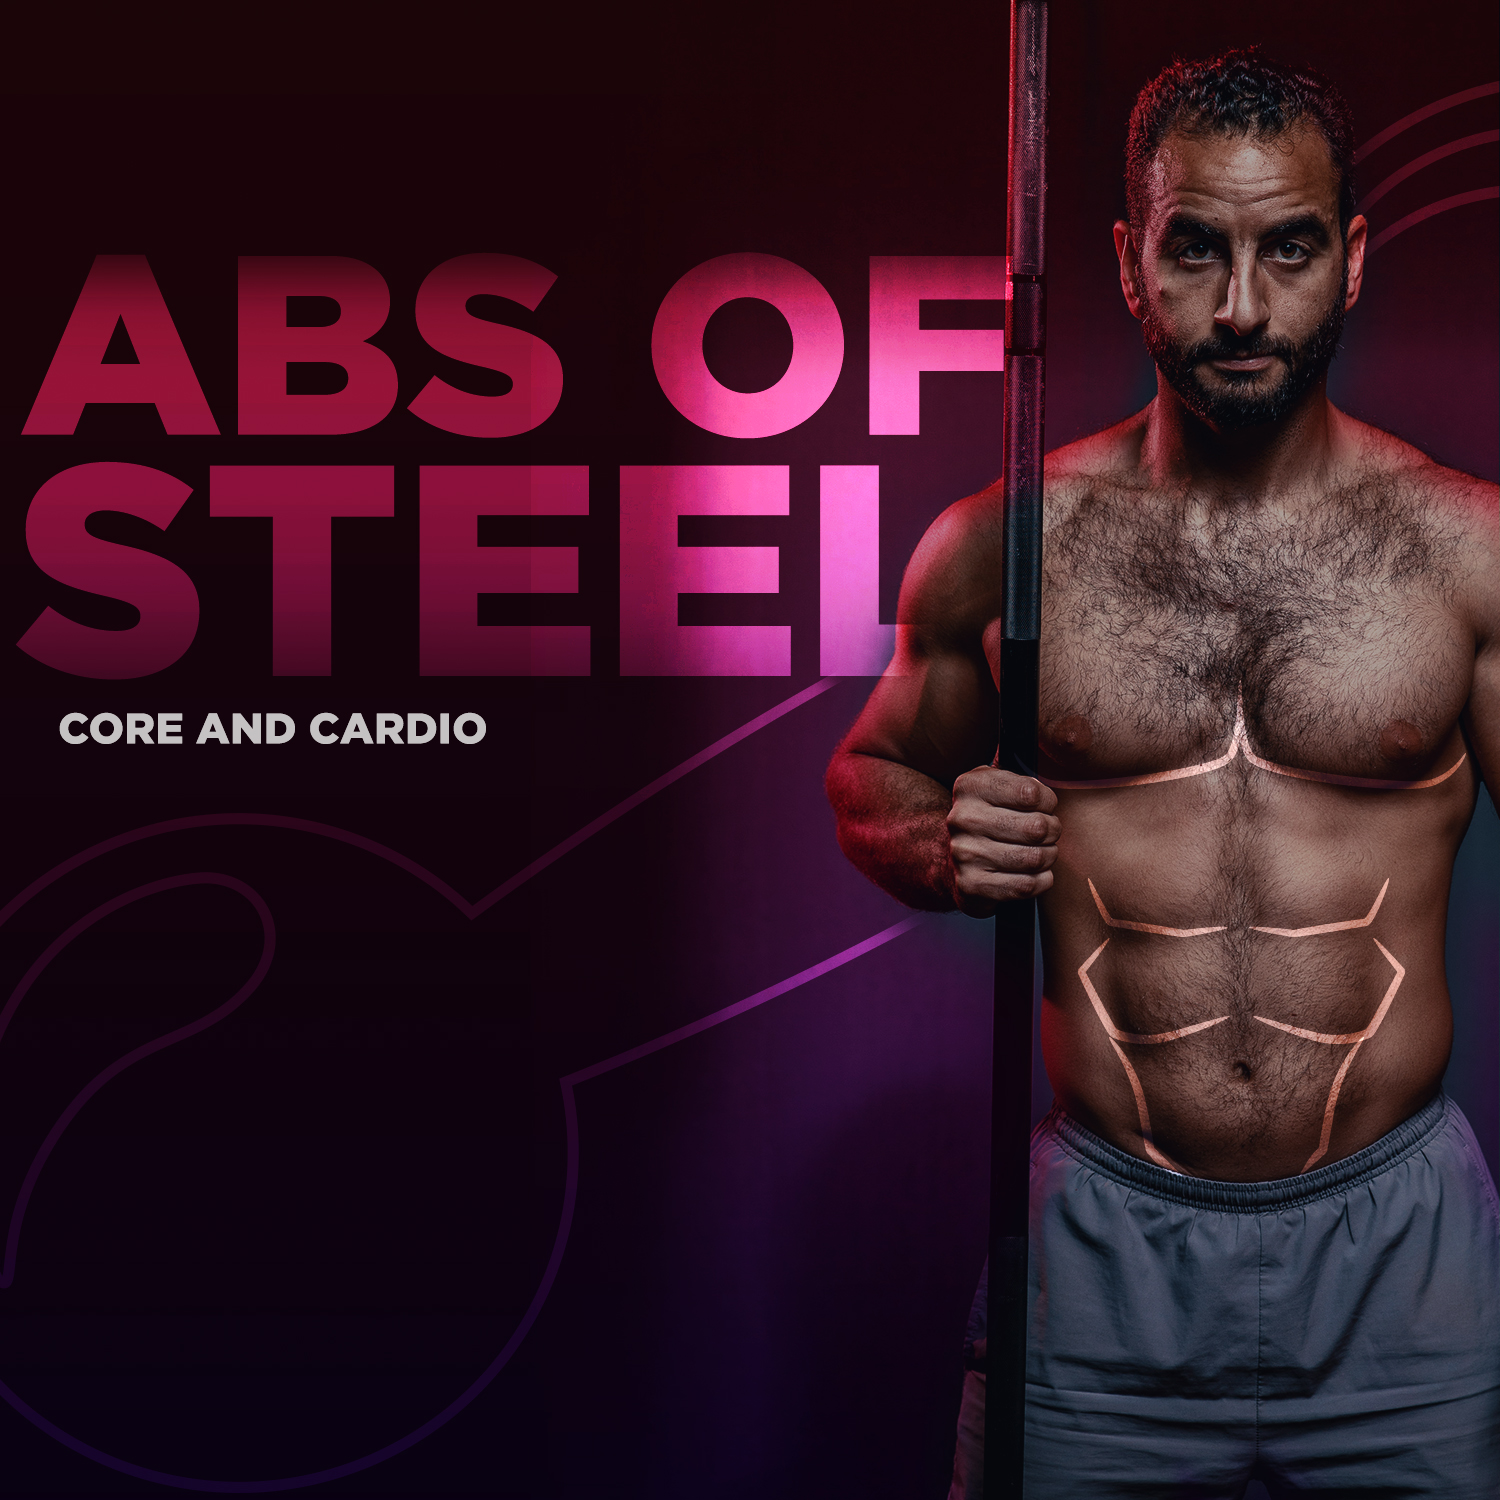 ABS of steel program HIT Egypt